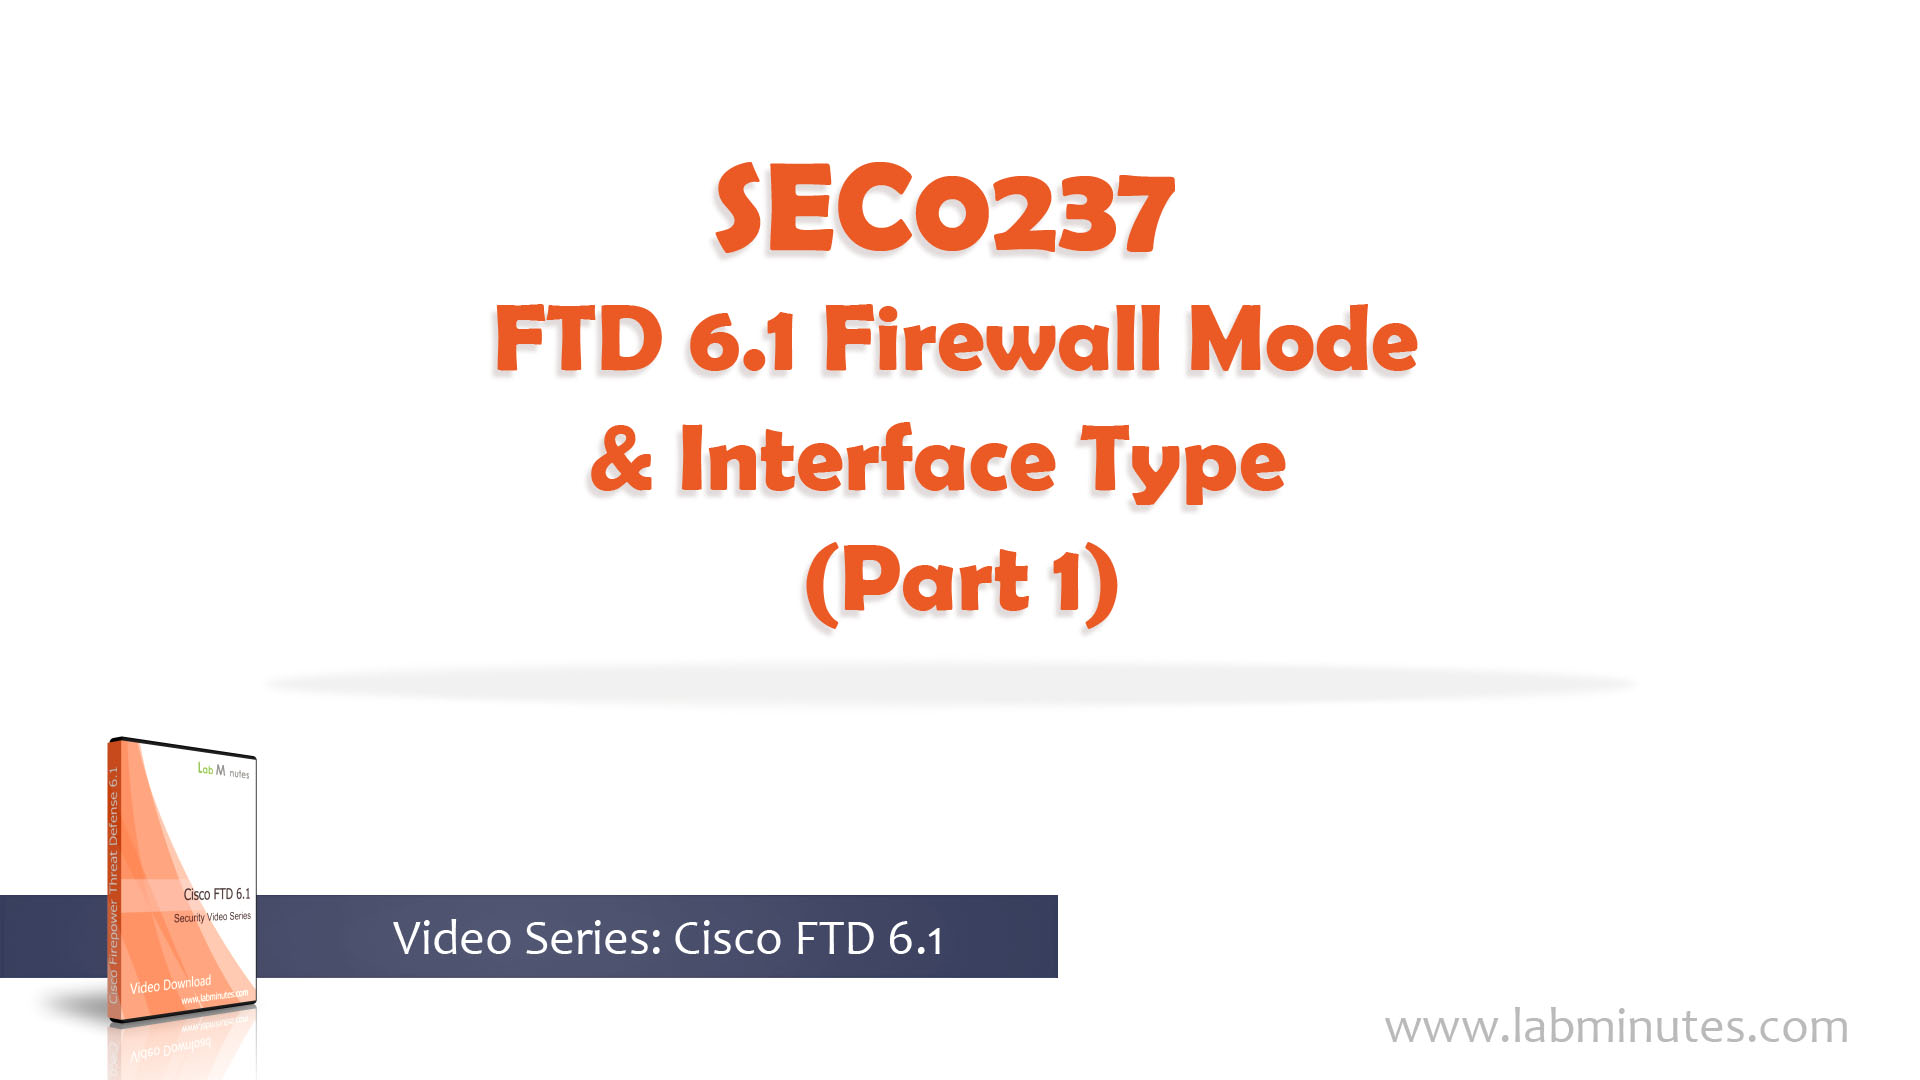 How to Configure FTD 6 1 Firewall Mode and Interface Type (Part 1)